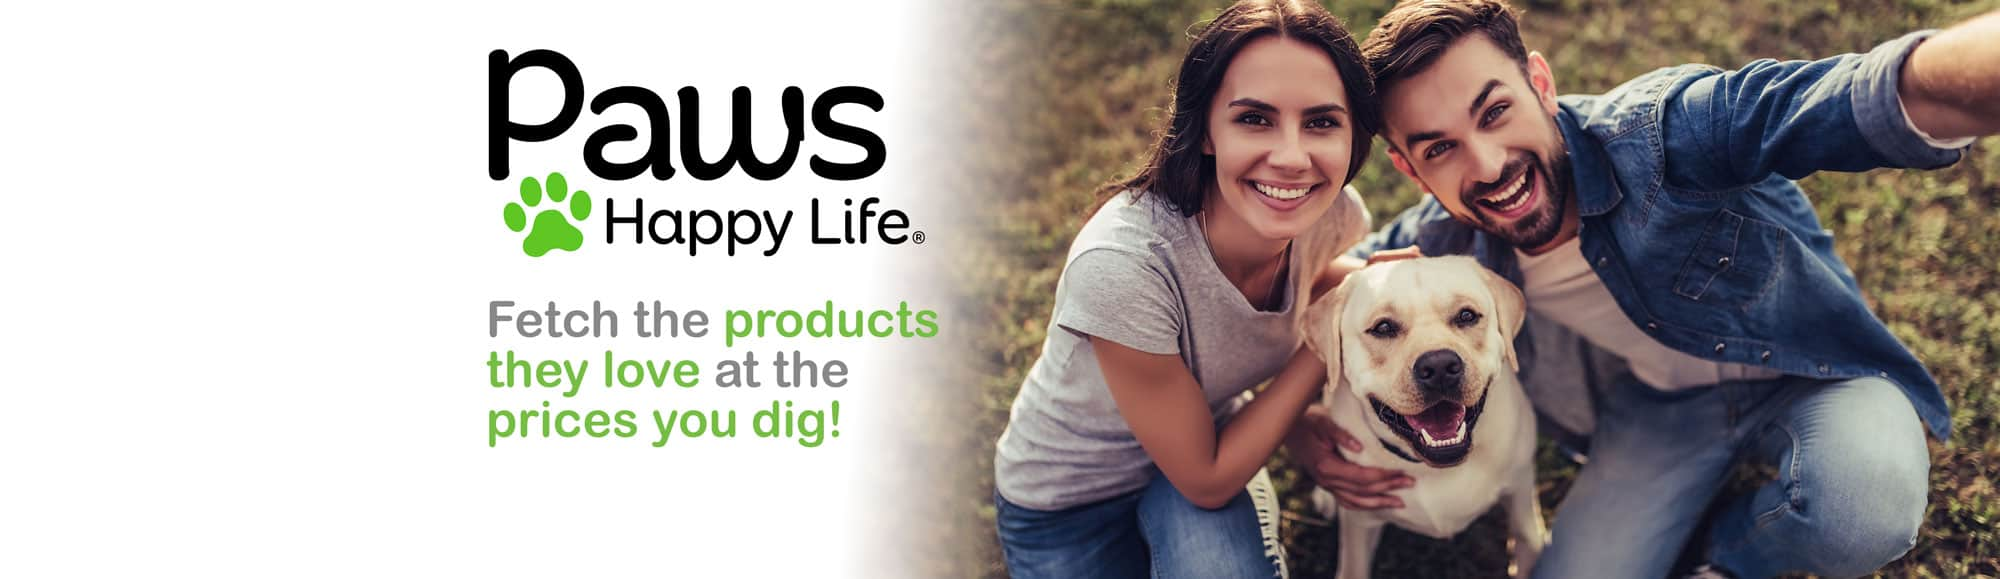 Fetch the products they love at the prices you dig!